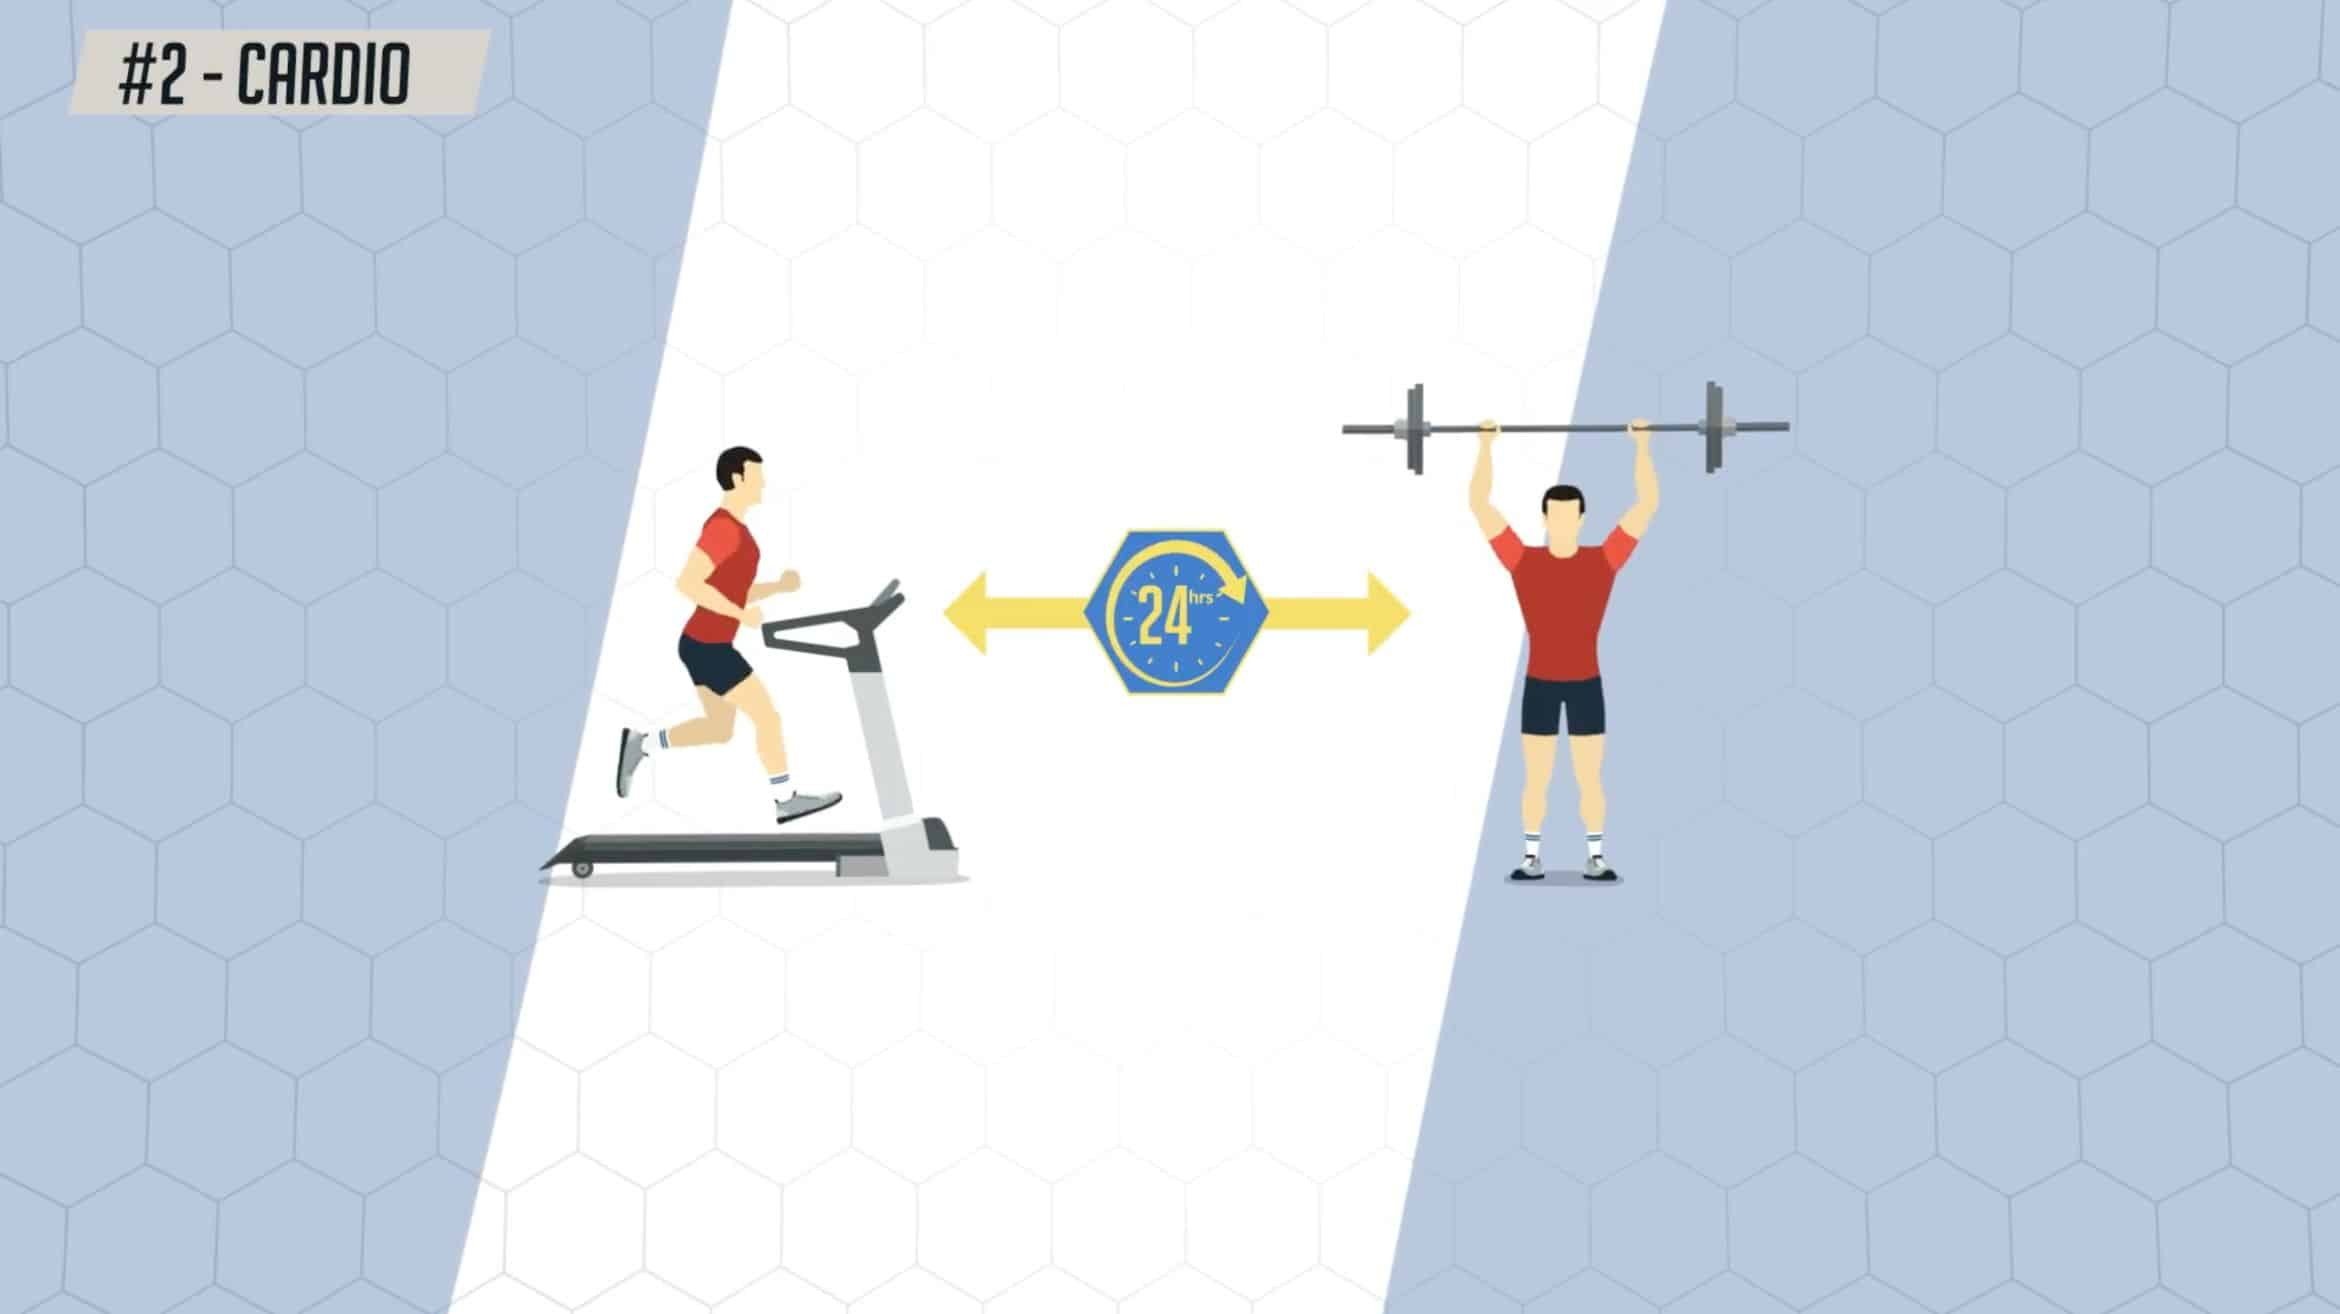 Leave at least 24 hours between your cardio and strength training if possible